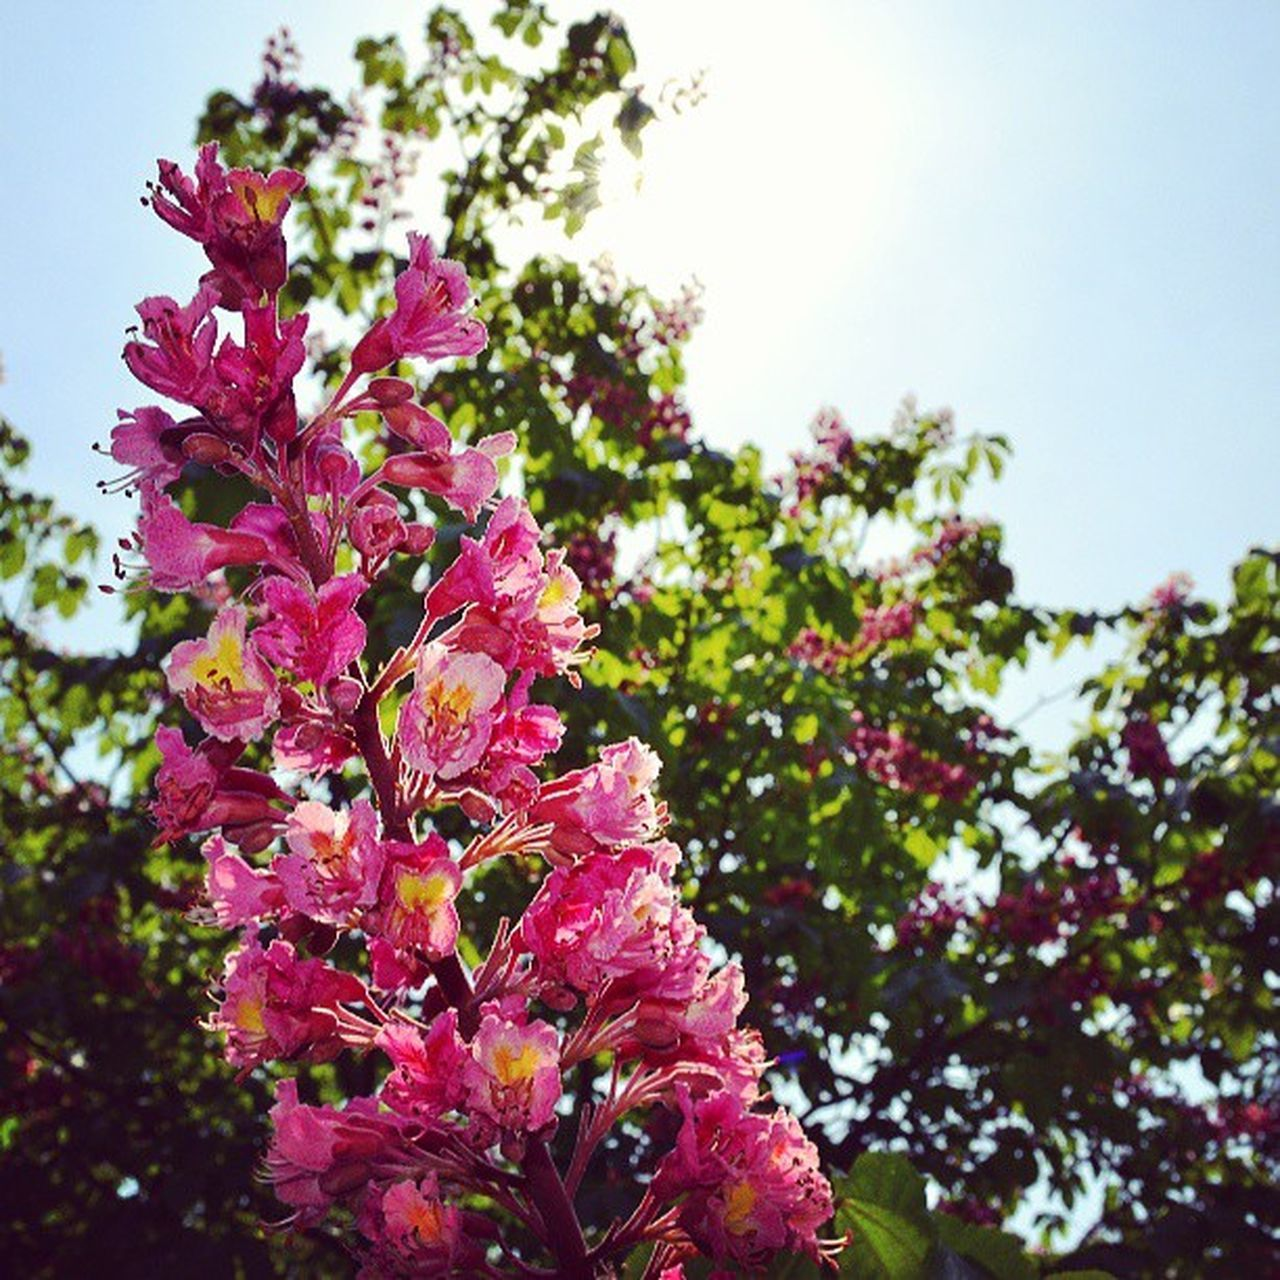 flower, fragility, growth, freshness, nature, blossom, beauty in nature, tree, no people, pink color, petal, day, springtime, low angle view, outdoors, branch, close-up, flower head, sky